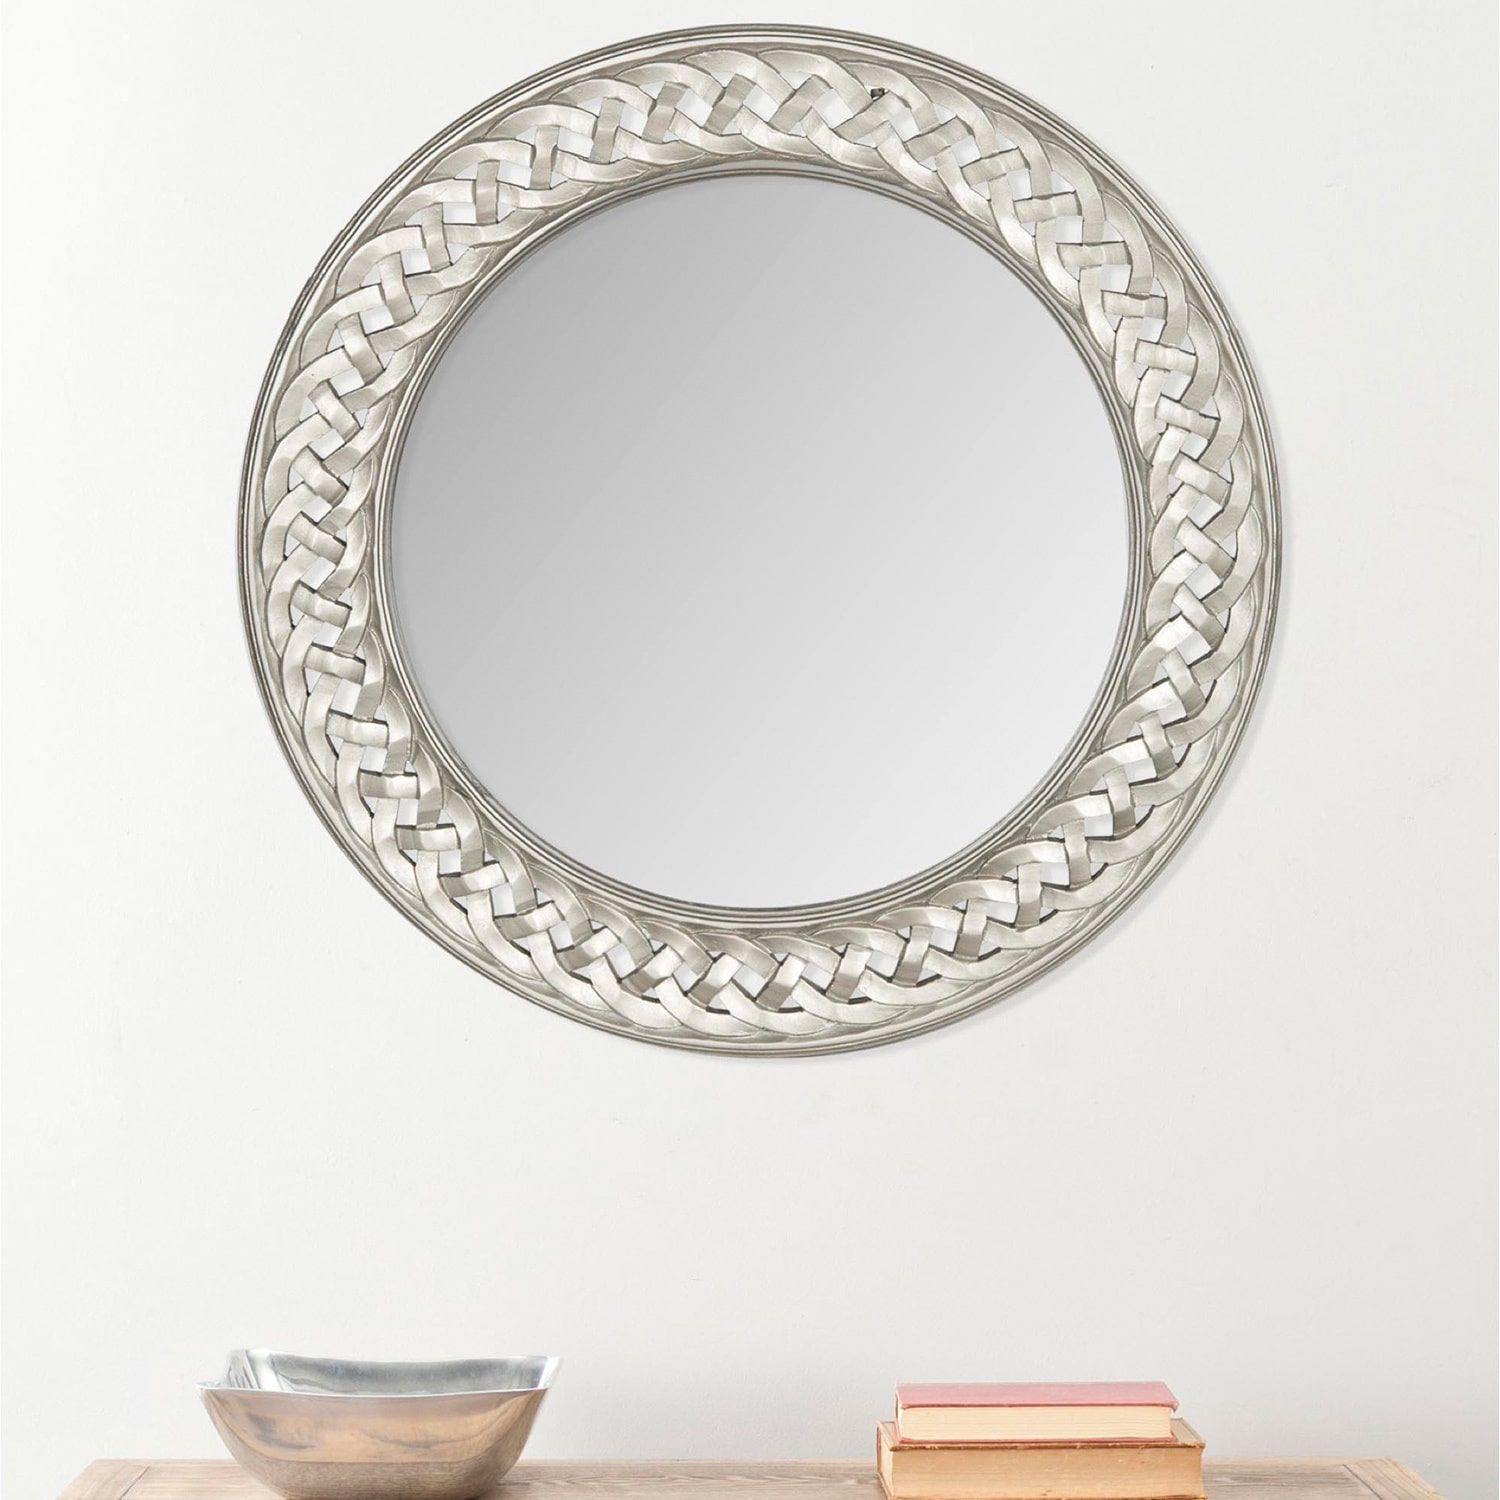 Safavieh Braided Chain Mirror, Multiple Colors